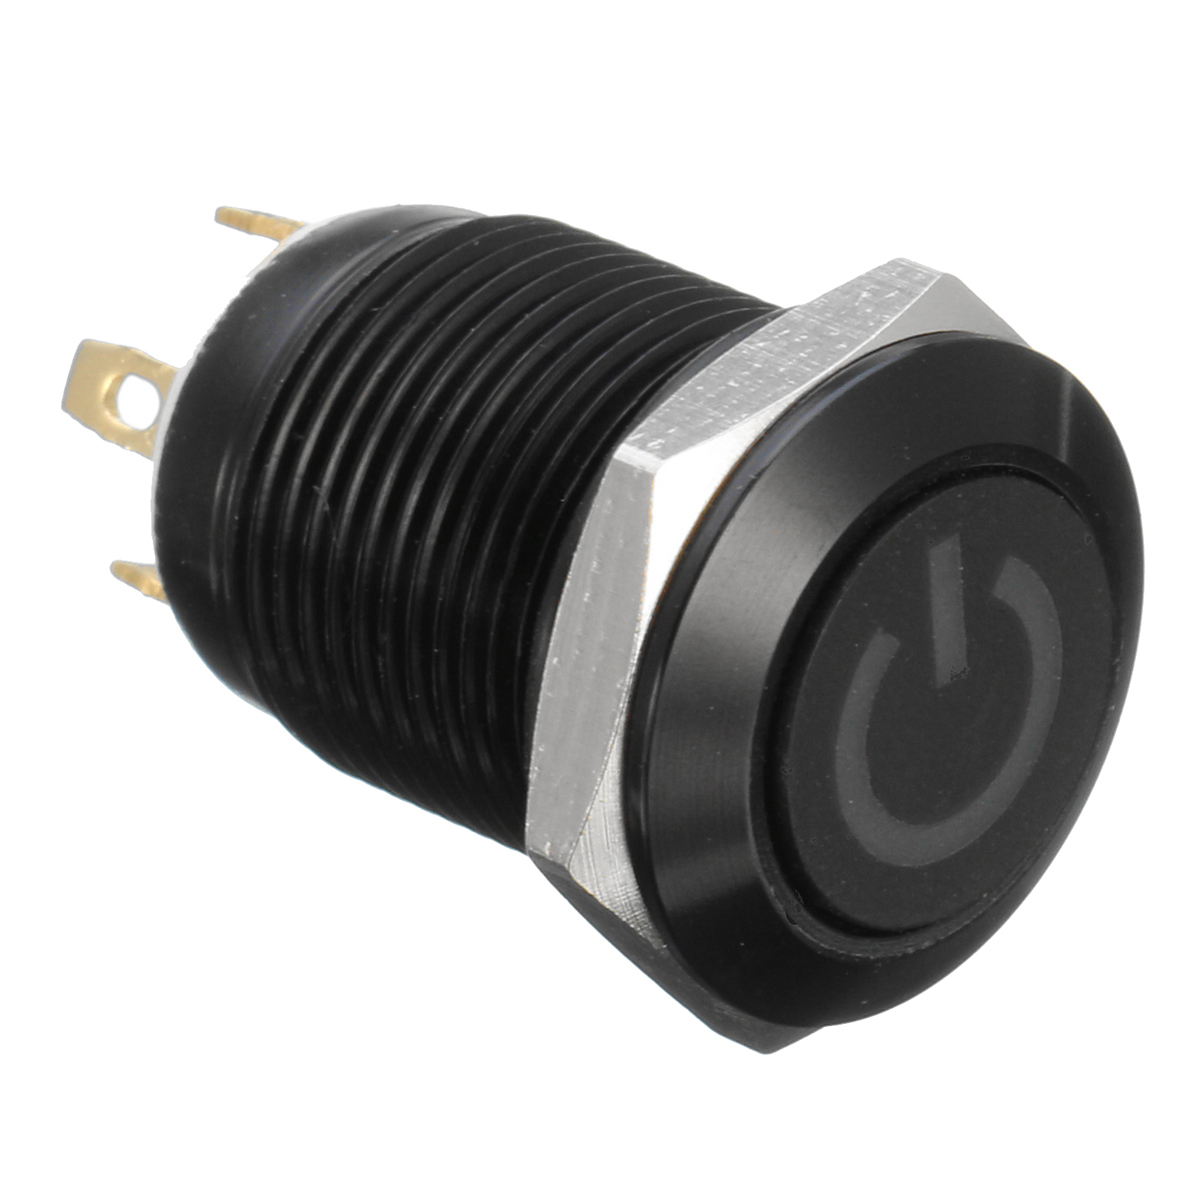 12v 4 Pin 12mm Led Metal Push Button Momentary Power Switch Pushbuttons And Latching On Off In Blue White B547b69d 678a 4ea8 A8e3 D41878e86094